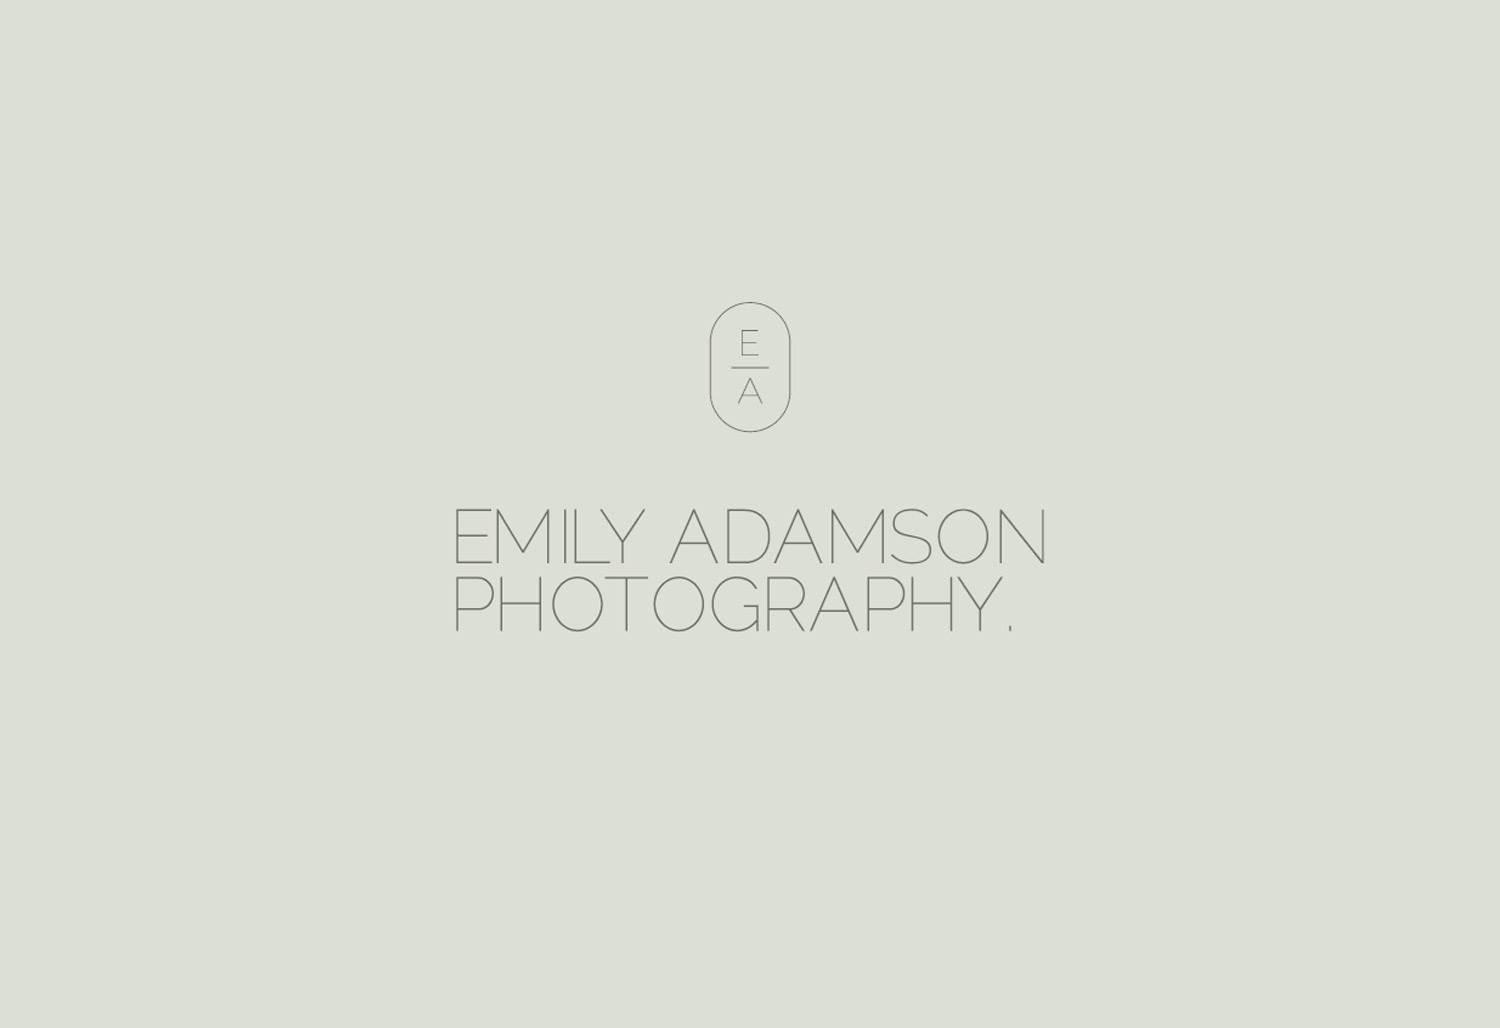 Emily Adamson - Queenstown Wedding Photography branding design